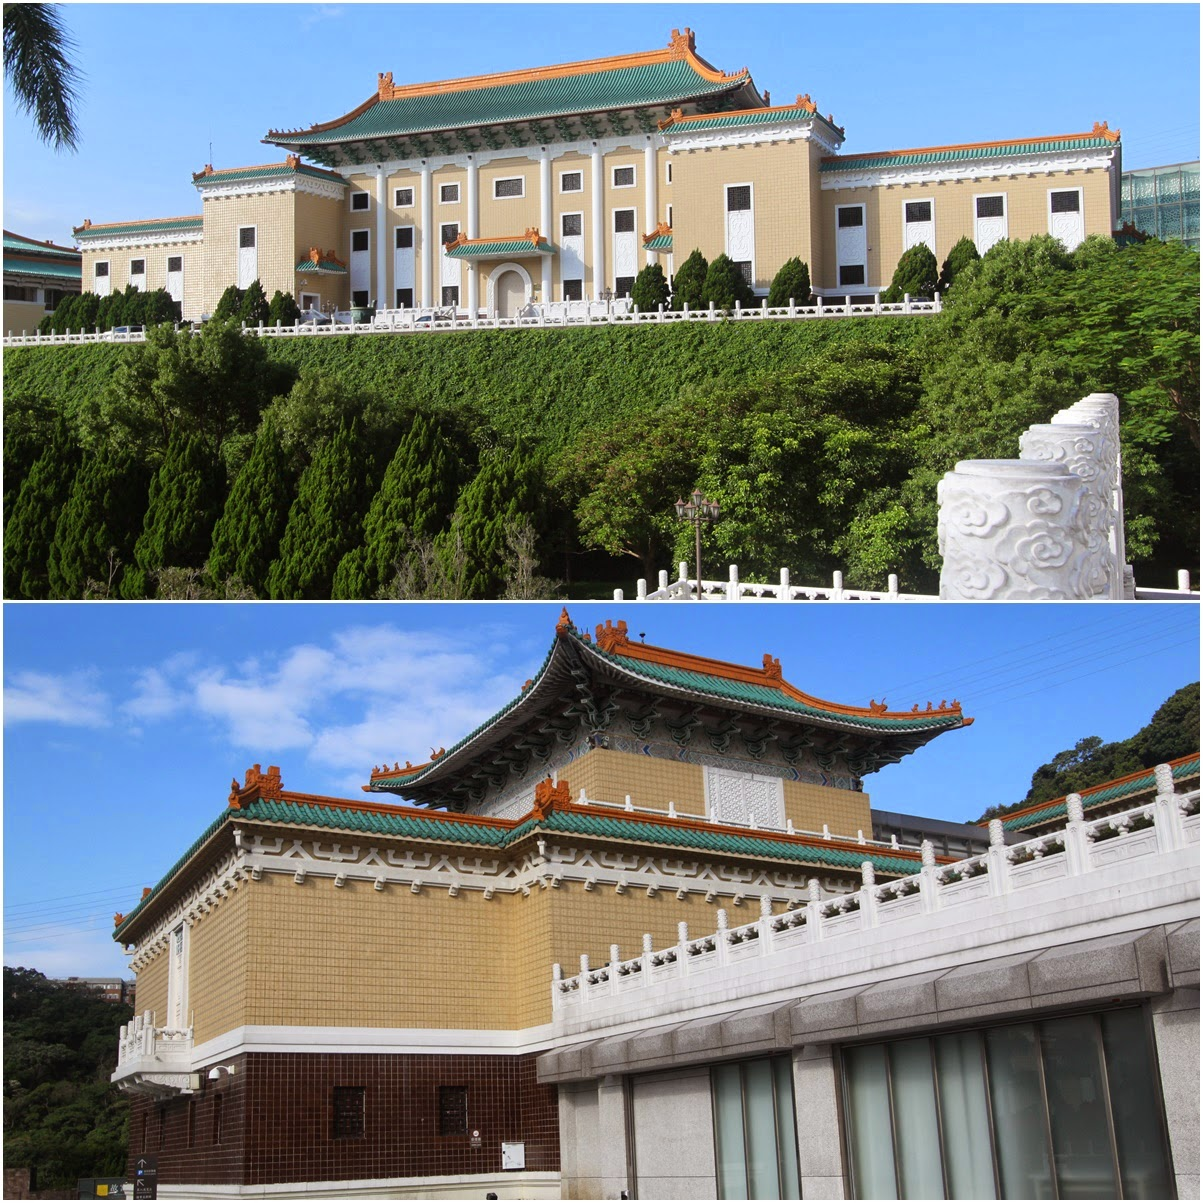 Other buildings can be seen nearby the main building of National Palace Museum in Taipei, Taiwan